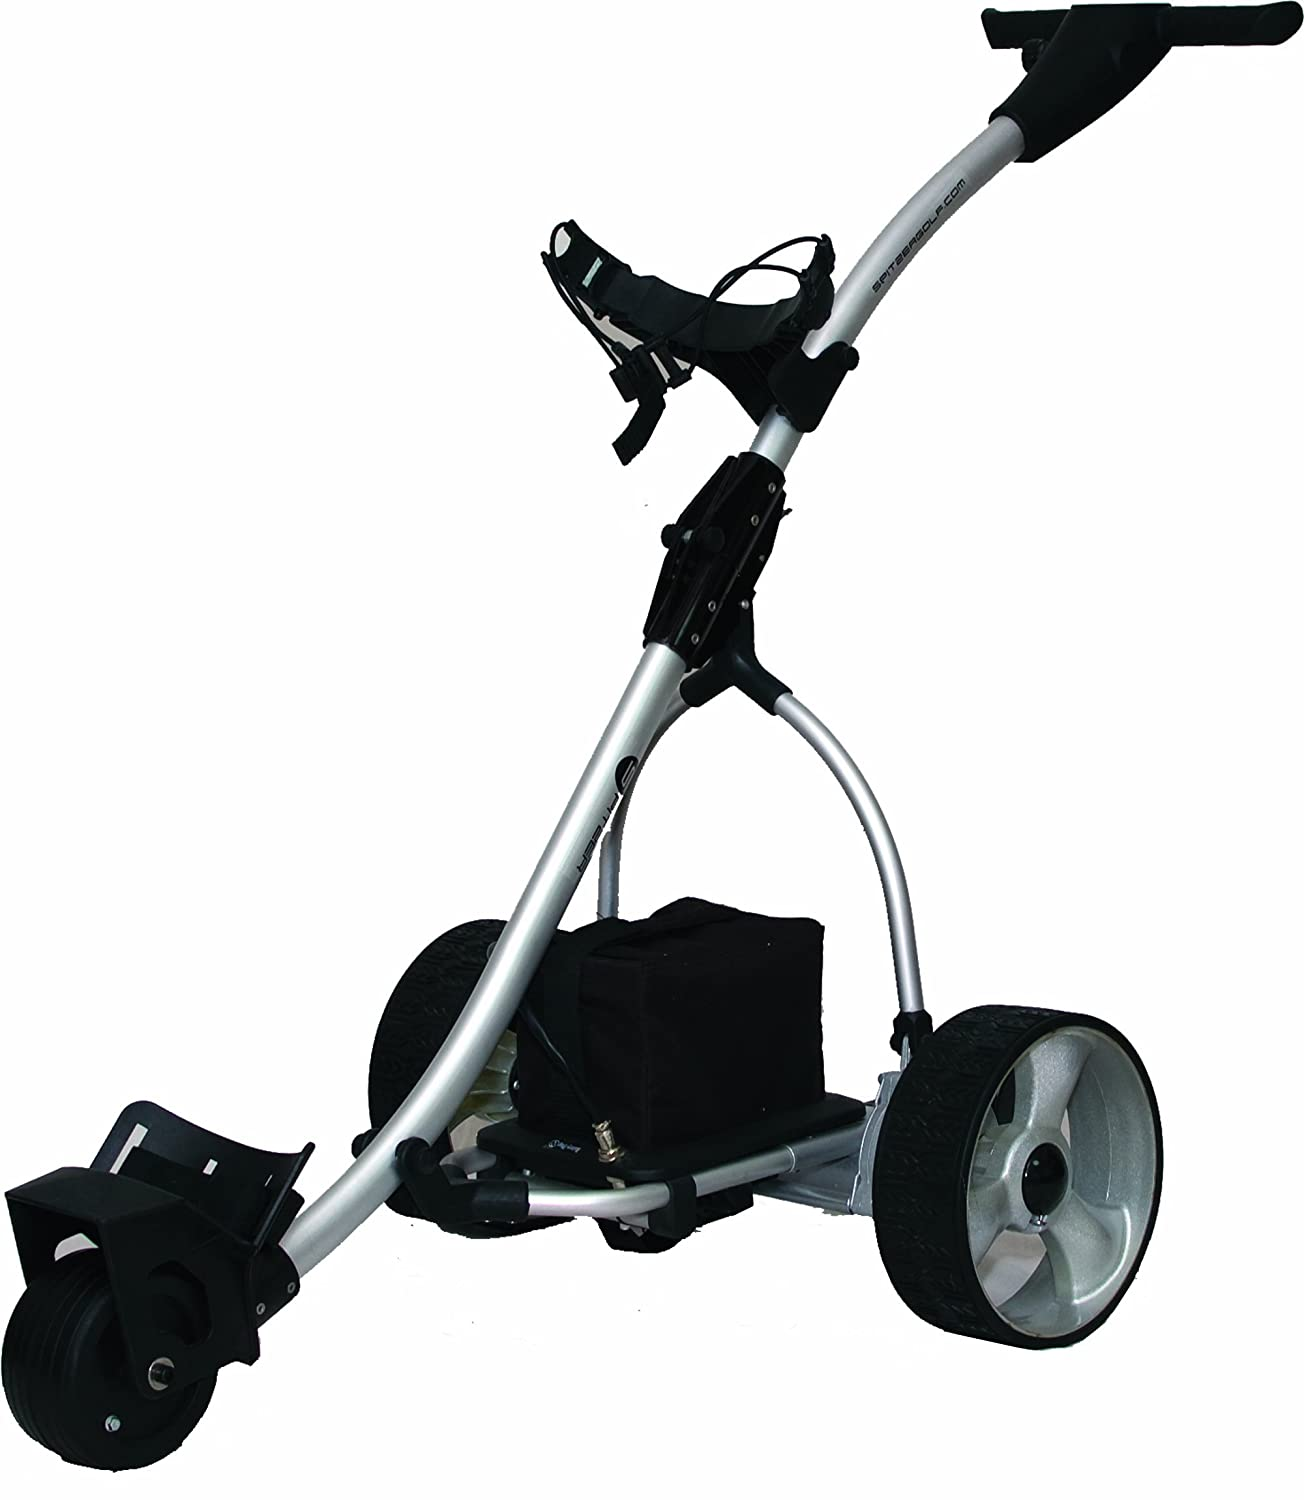 Spitzer R5 Digital Remote Control Golf Trolley Black Friday 2019 Deal